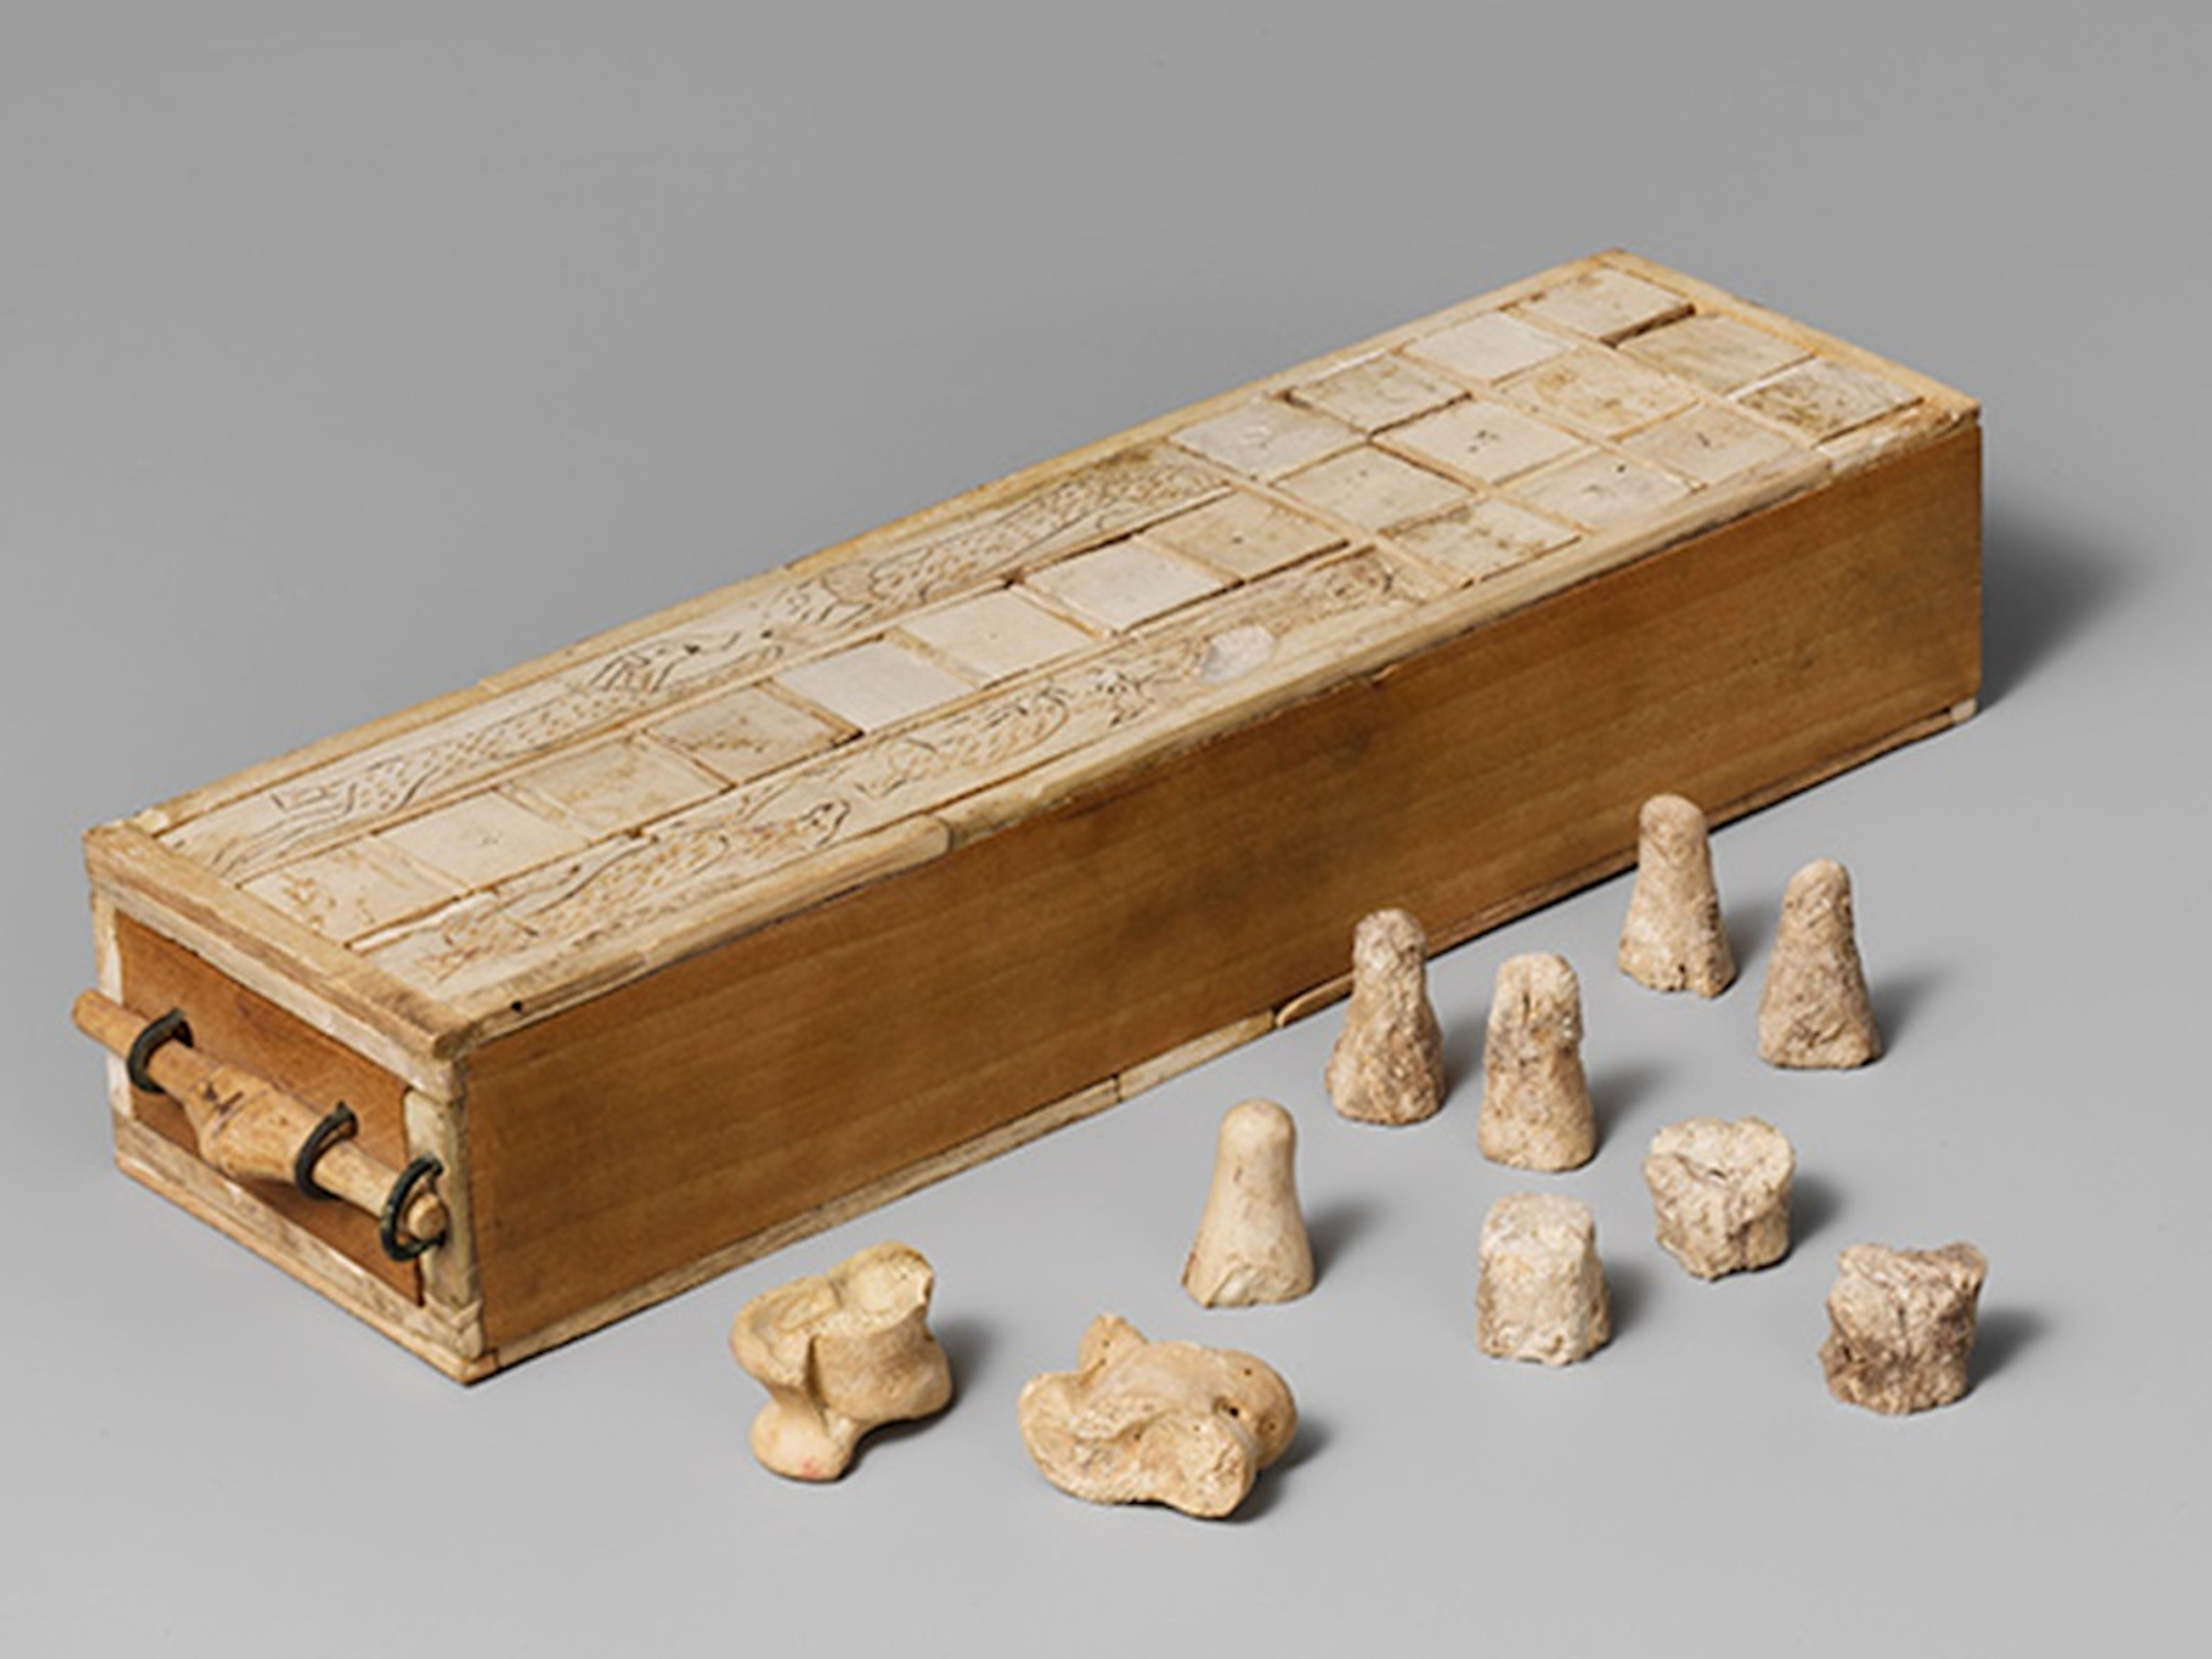 ​Aseb game box with playing pieces and knucklebones dice. 1635–1458 BCE. Egypt, Thebes. Ivory, copper alloy, modern wood. The Metropolitan Museum of Art, New York- 16.10.475a-k